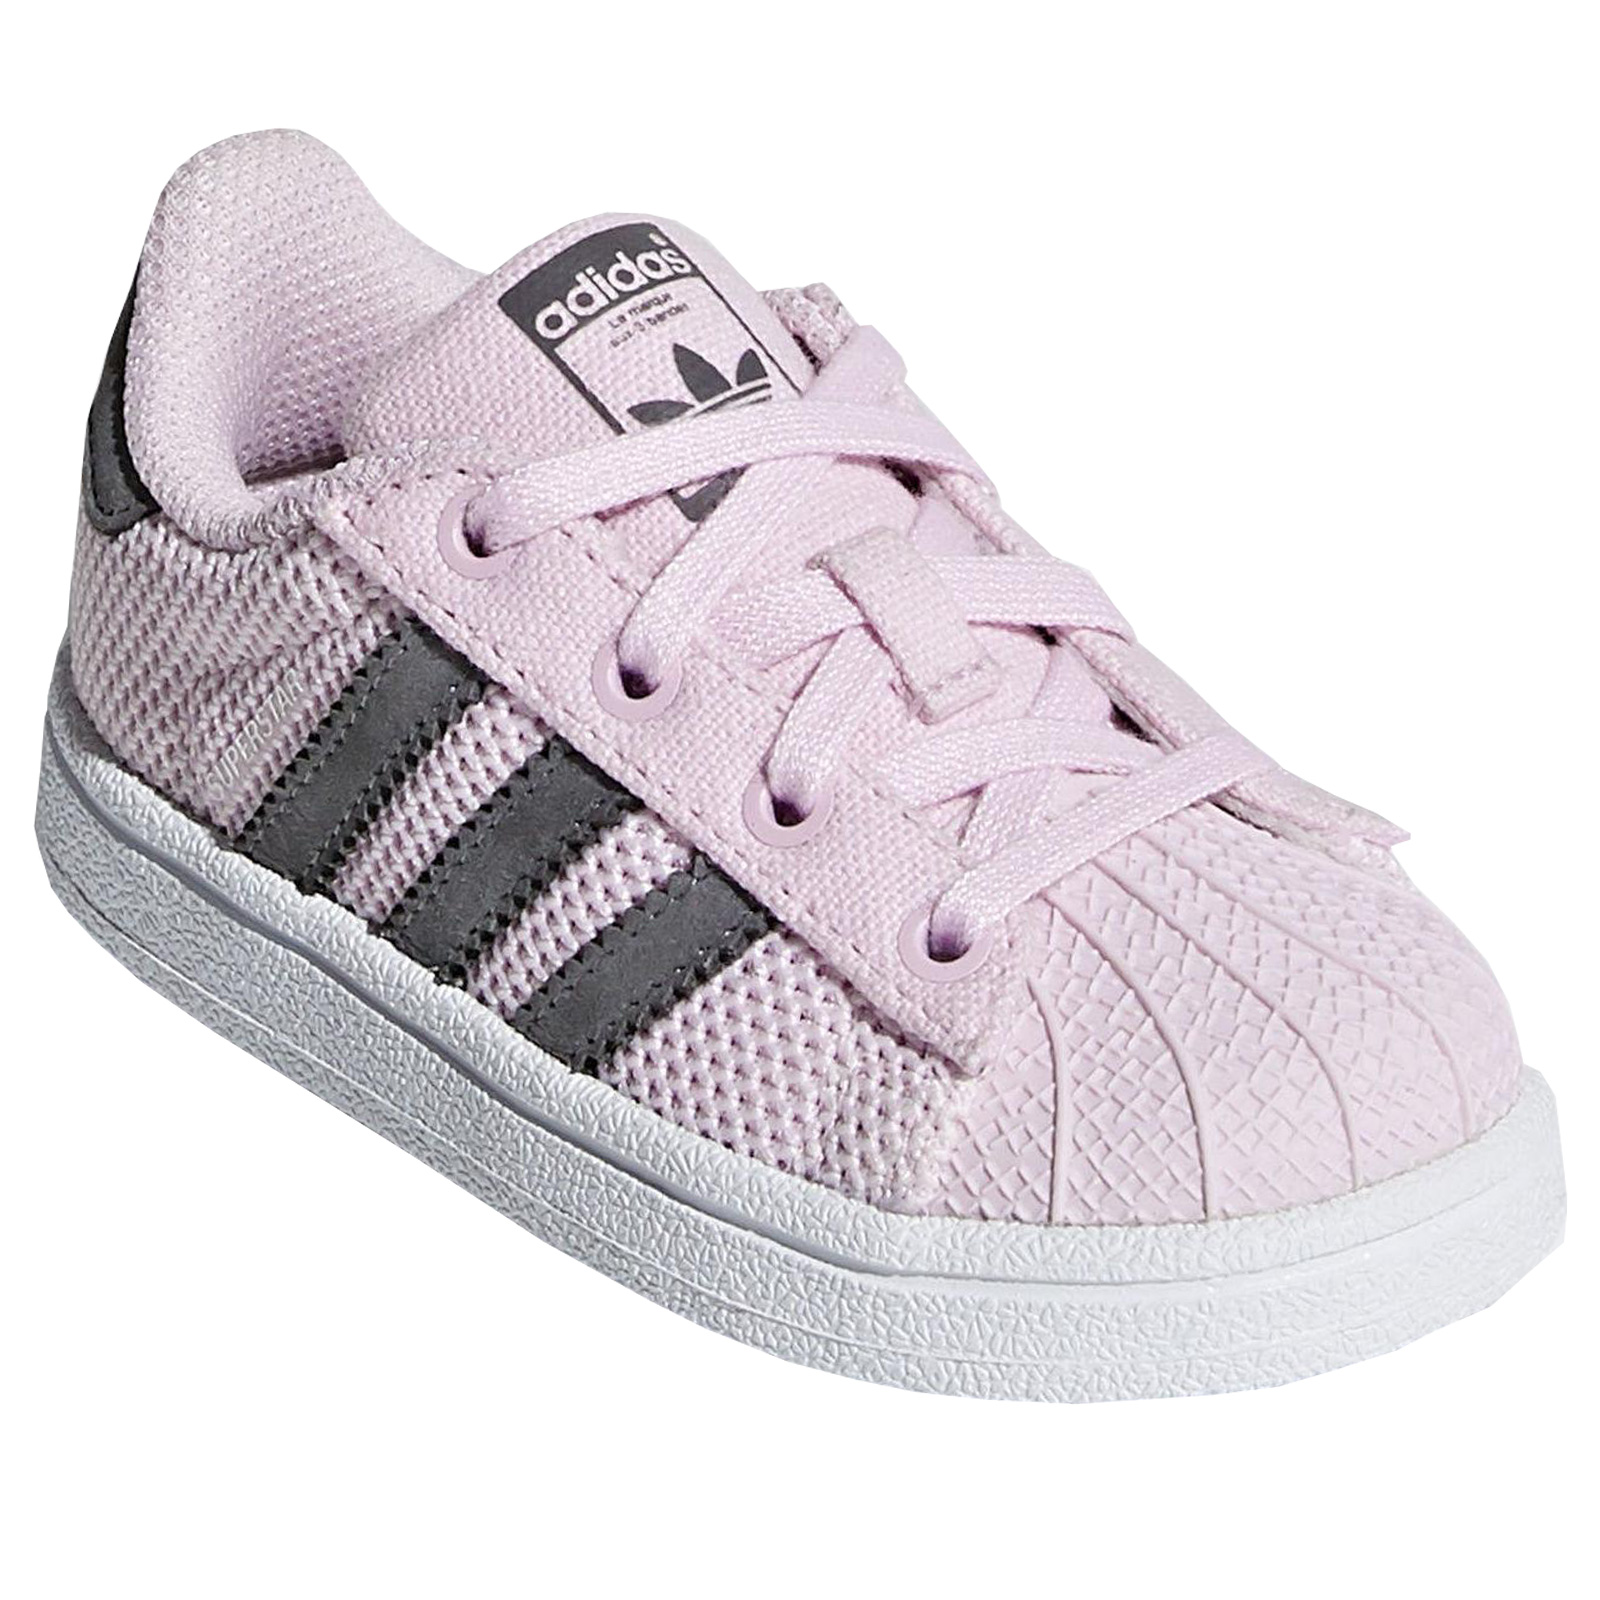 Details about Adidas Originals Superstar Girls Children's Shoes Sneakers Lilac Pink CQ2862